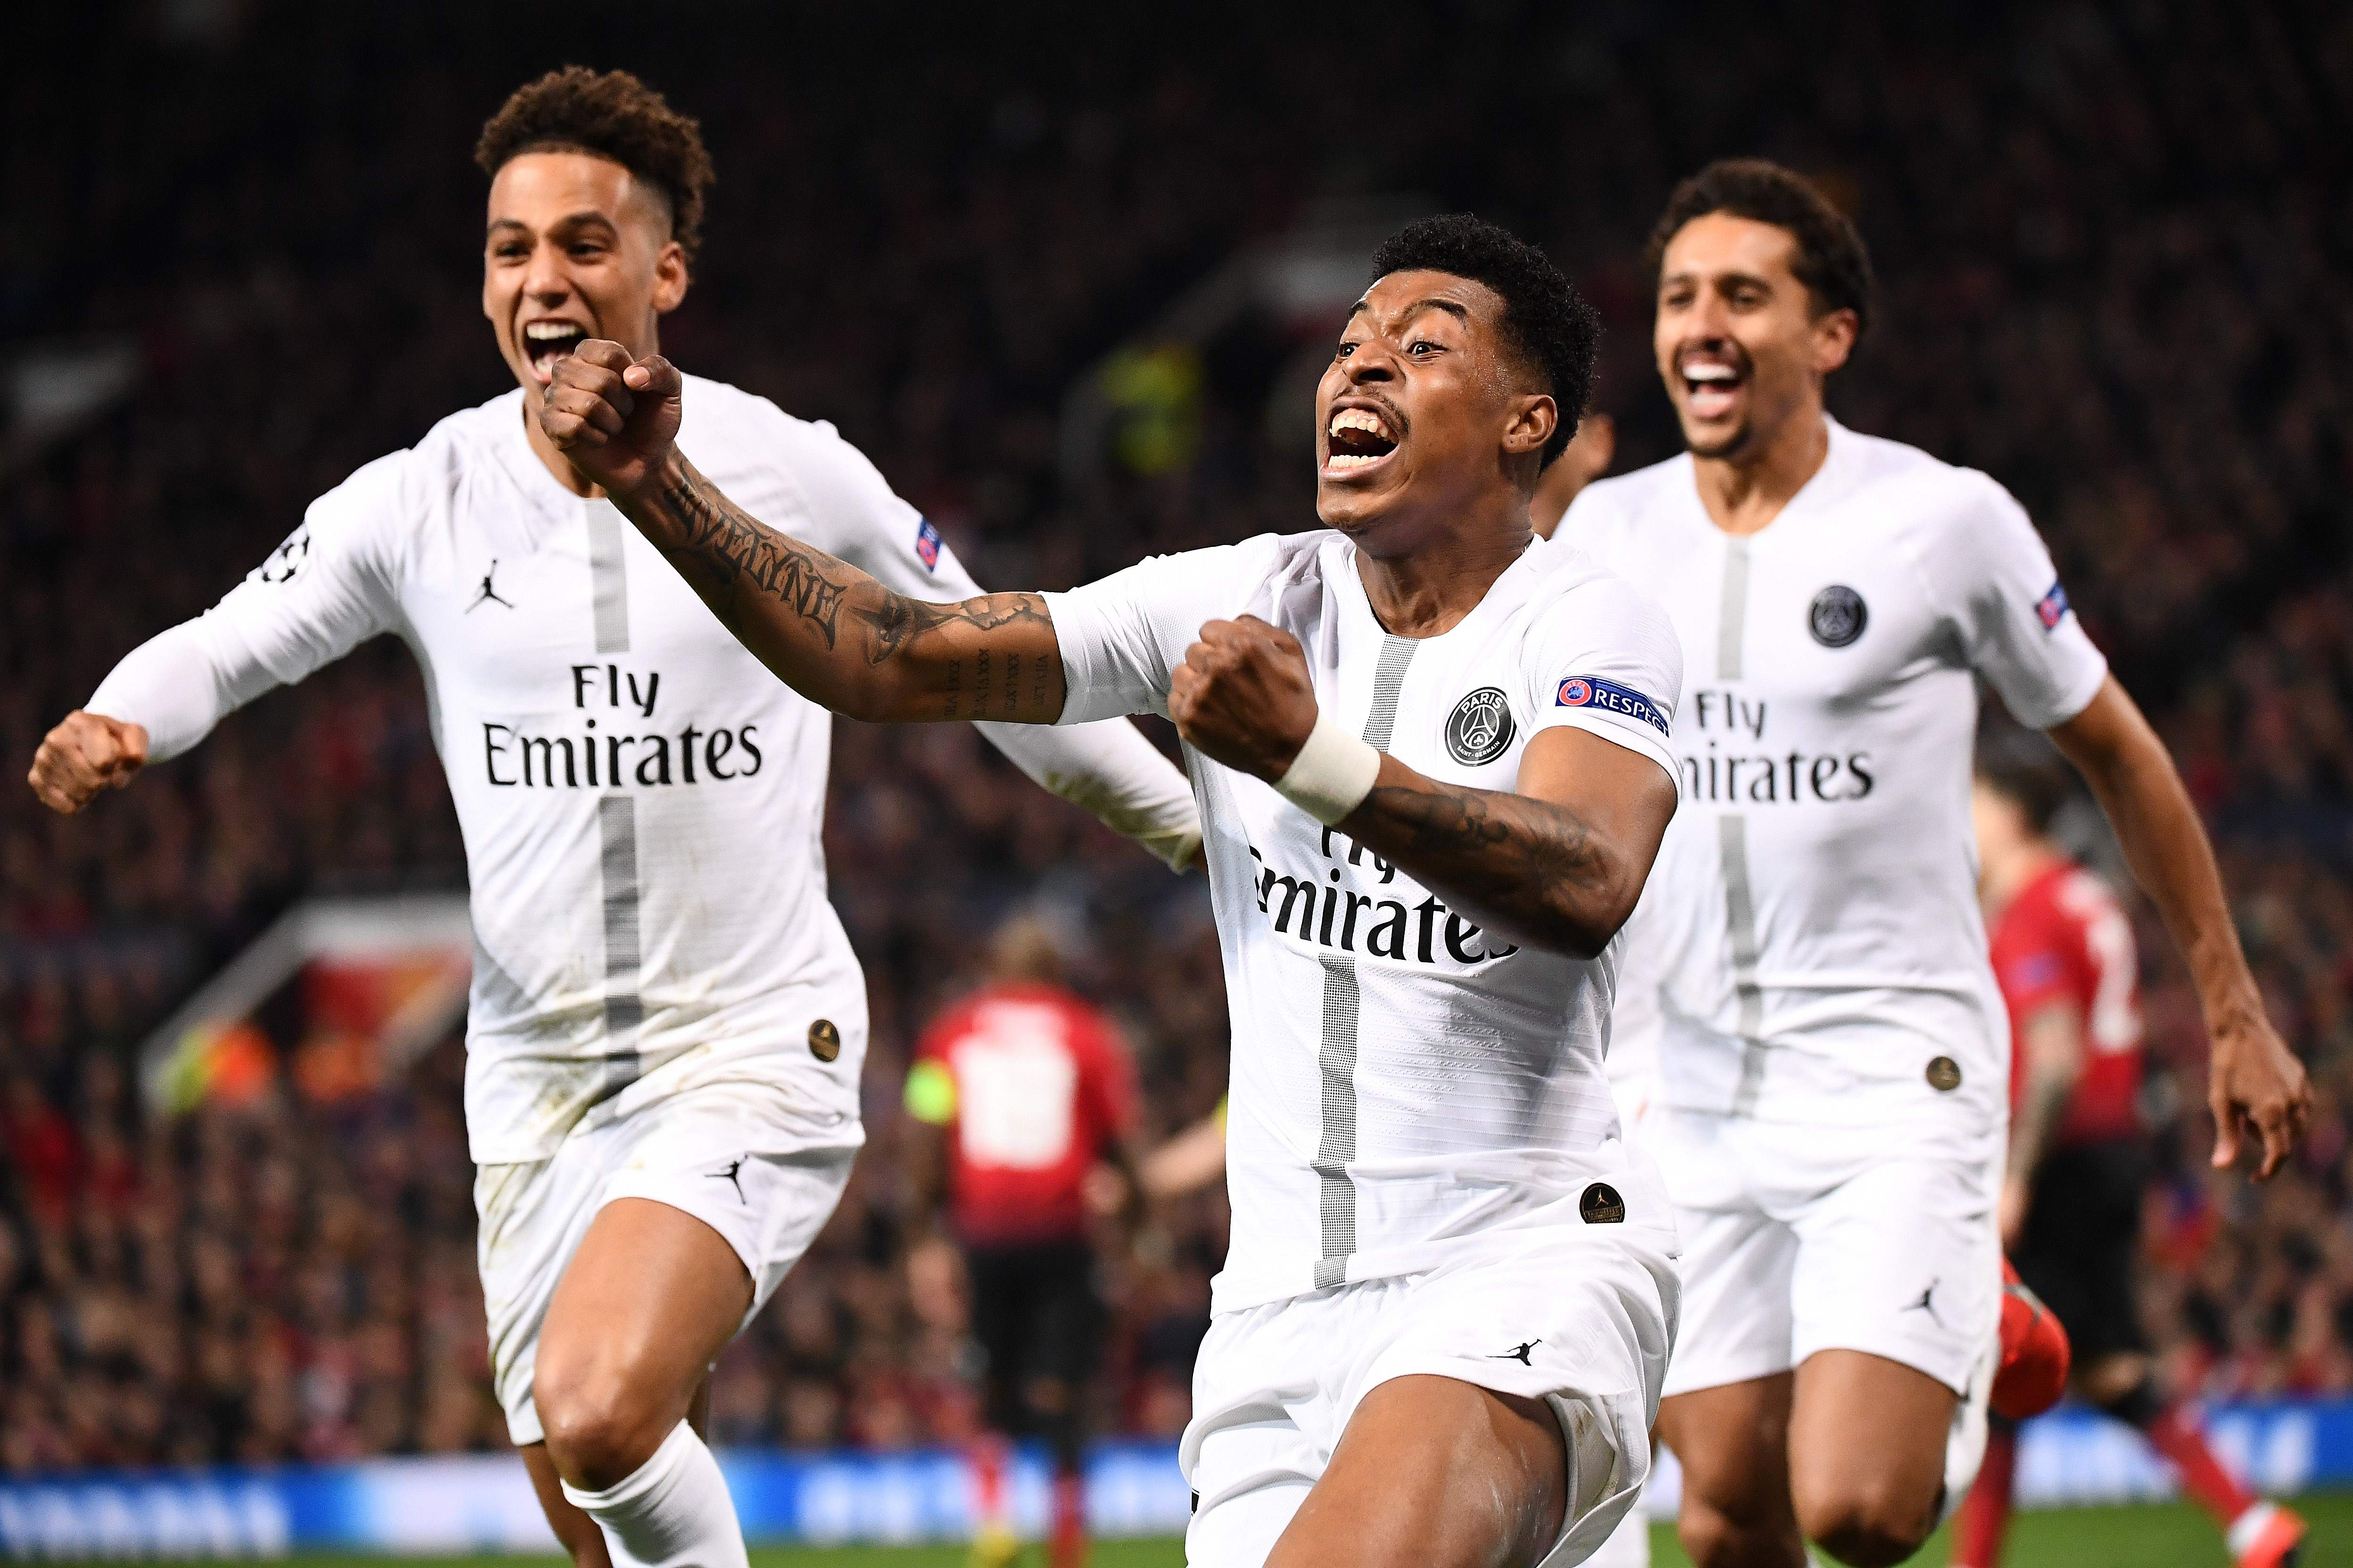 Paris Saint-Germain's French defender Presnel Kimpembe celebrates scoring the opening goal during the first leg of the UEFA Champions League round of 16 football match between Manchester United and Paris Saint-Germain (PSG) at Old Trafford in Manchester, north-west England on February 12, 2019. (Photo by FRANCK FIFE / AFP)